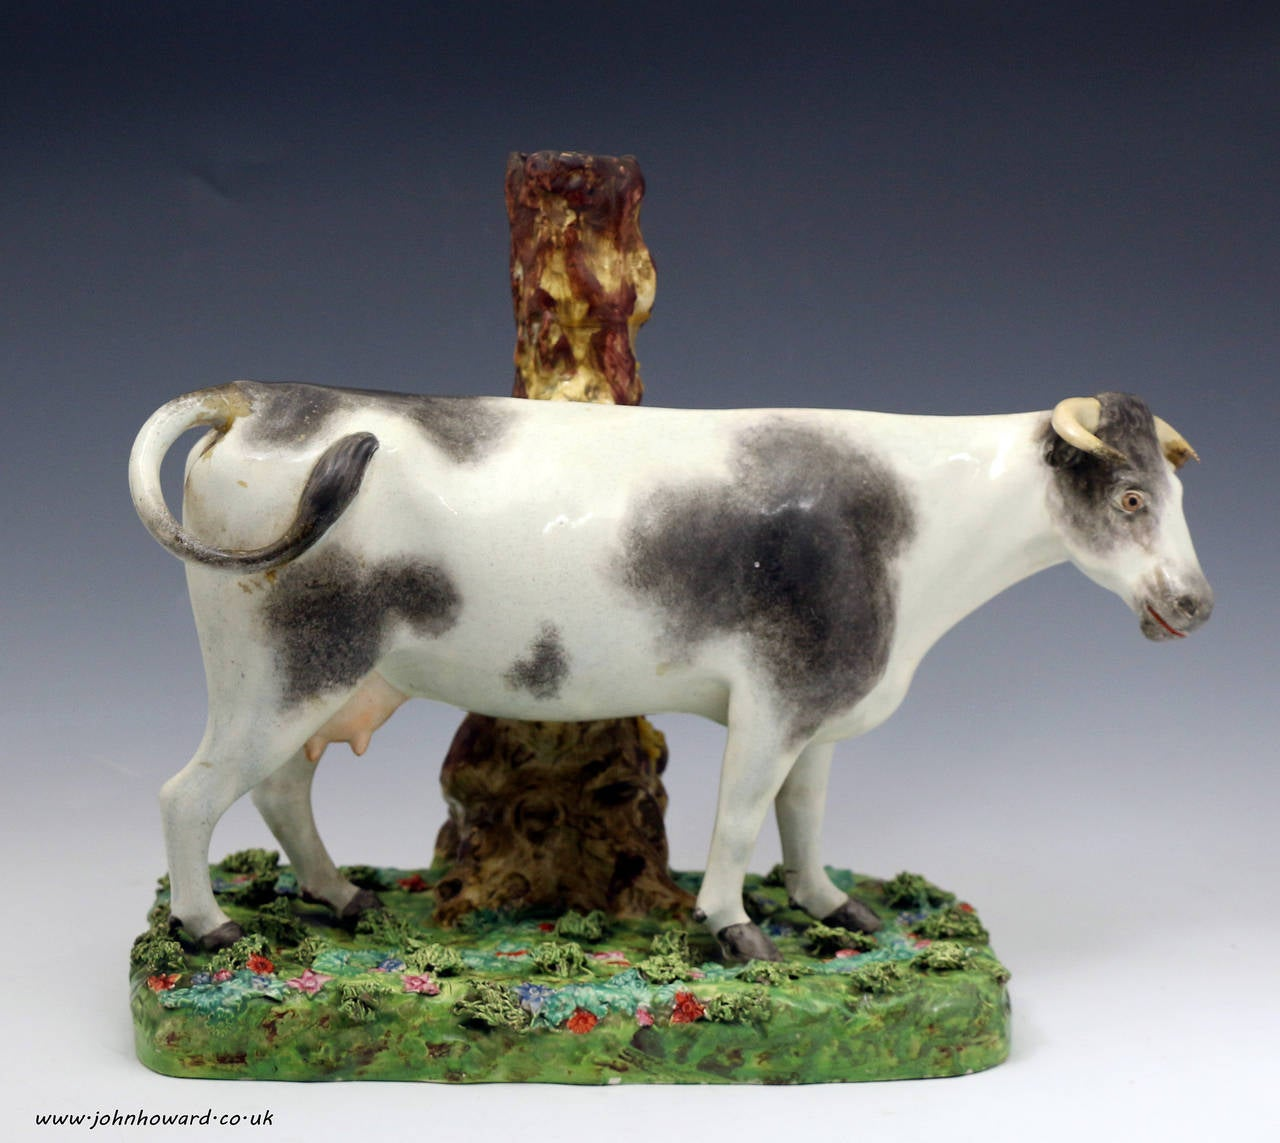 Massive Staffordshire Pearlware Pottery Figure of a Standing Cow on Colored Base 2